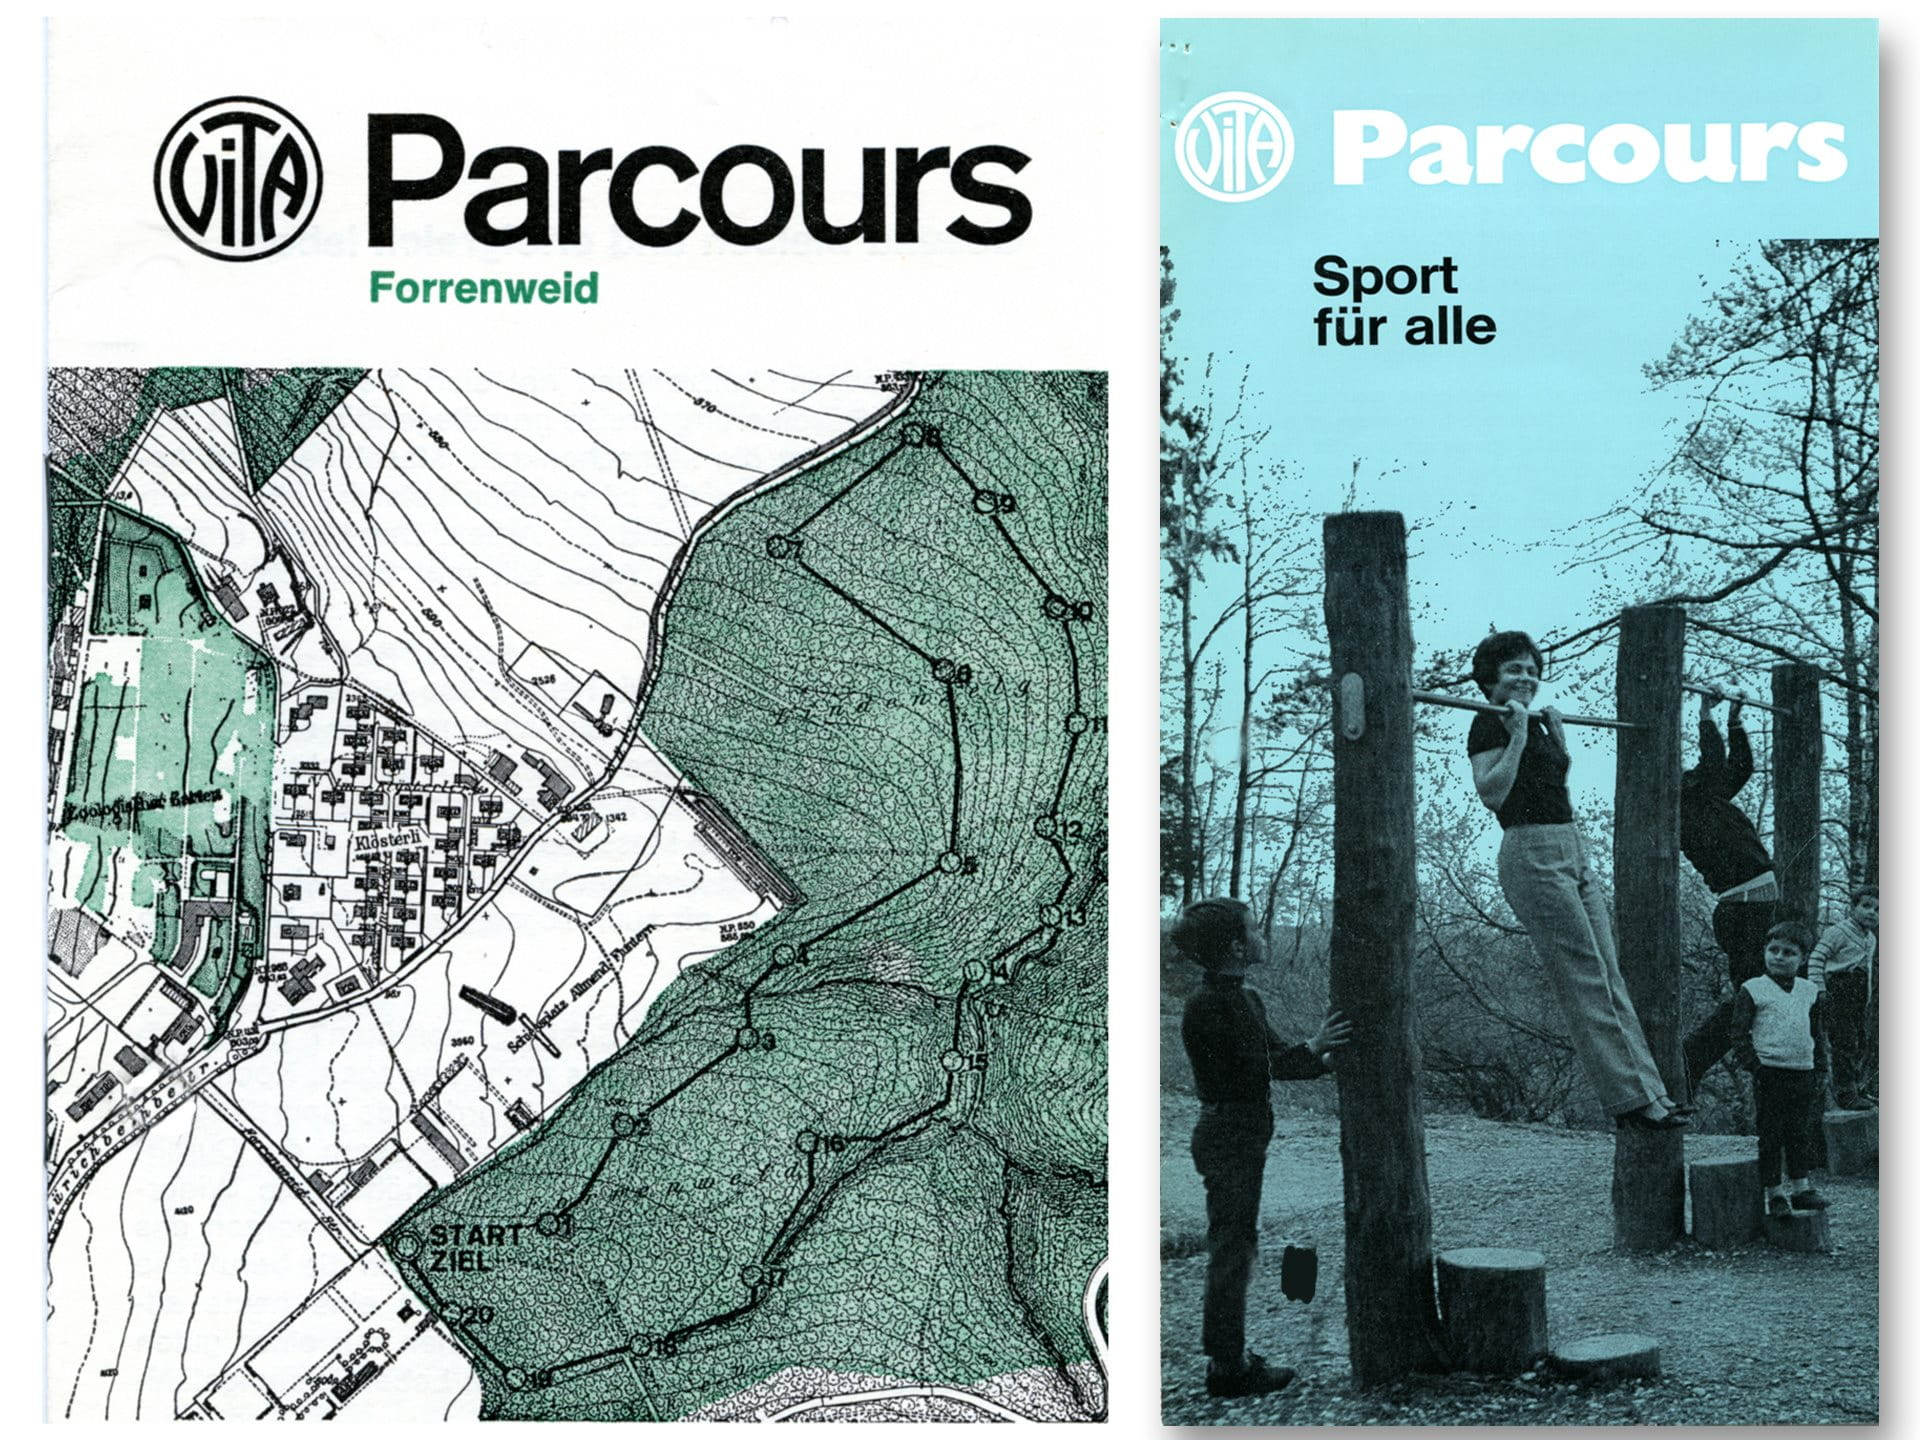 1968: Launch of Zurich Vita Parcours